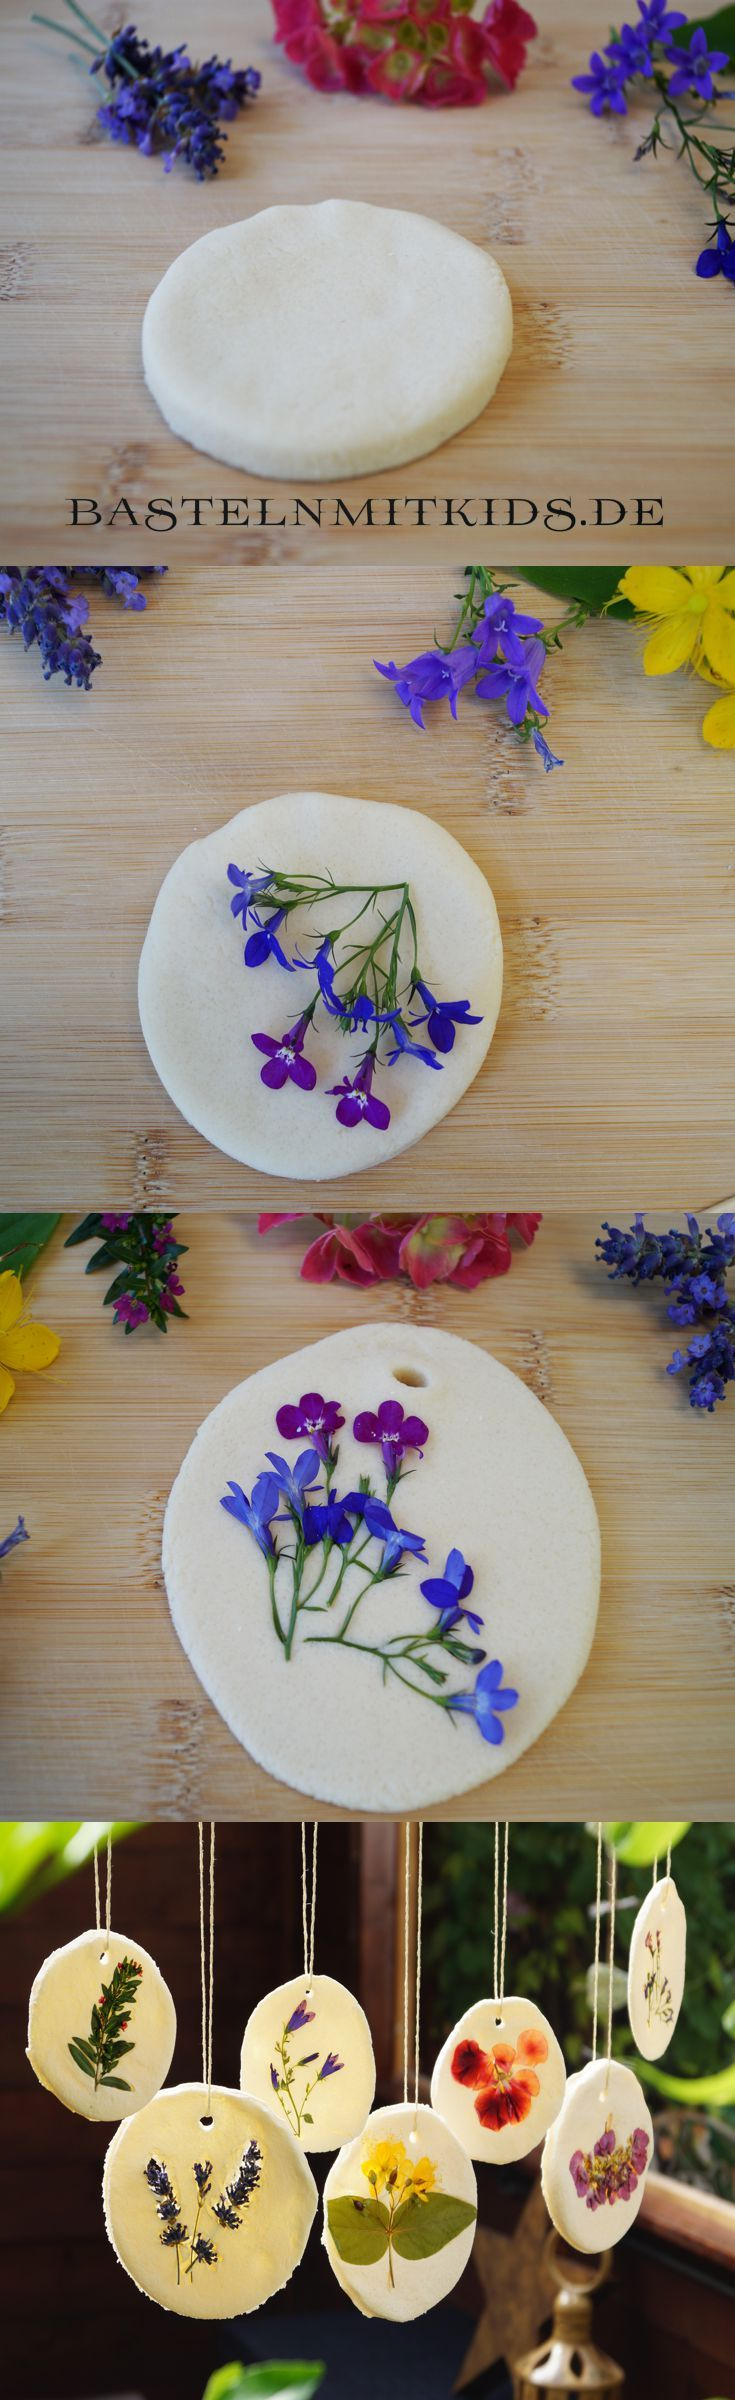 DIY / how to make a beautiful *salt dough* mobile with pressed flowers <3